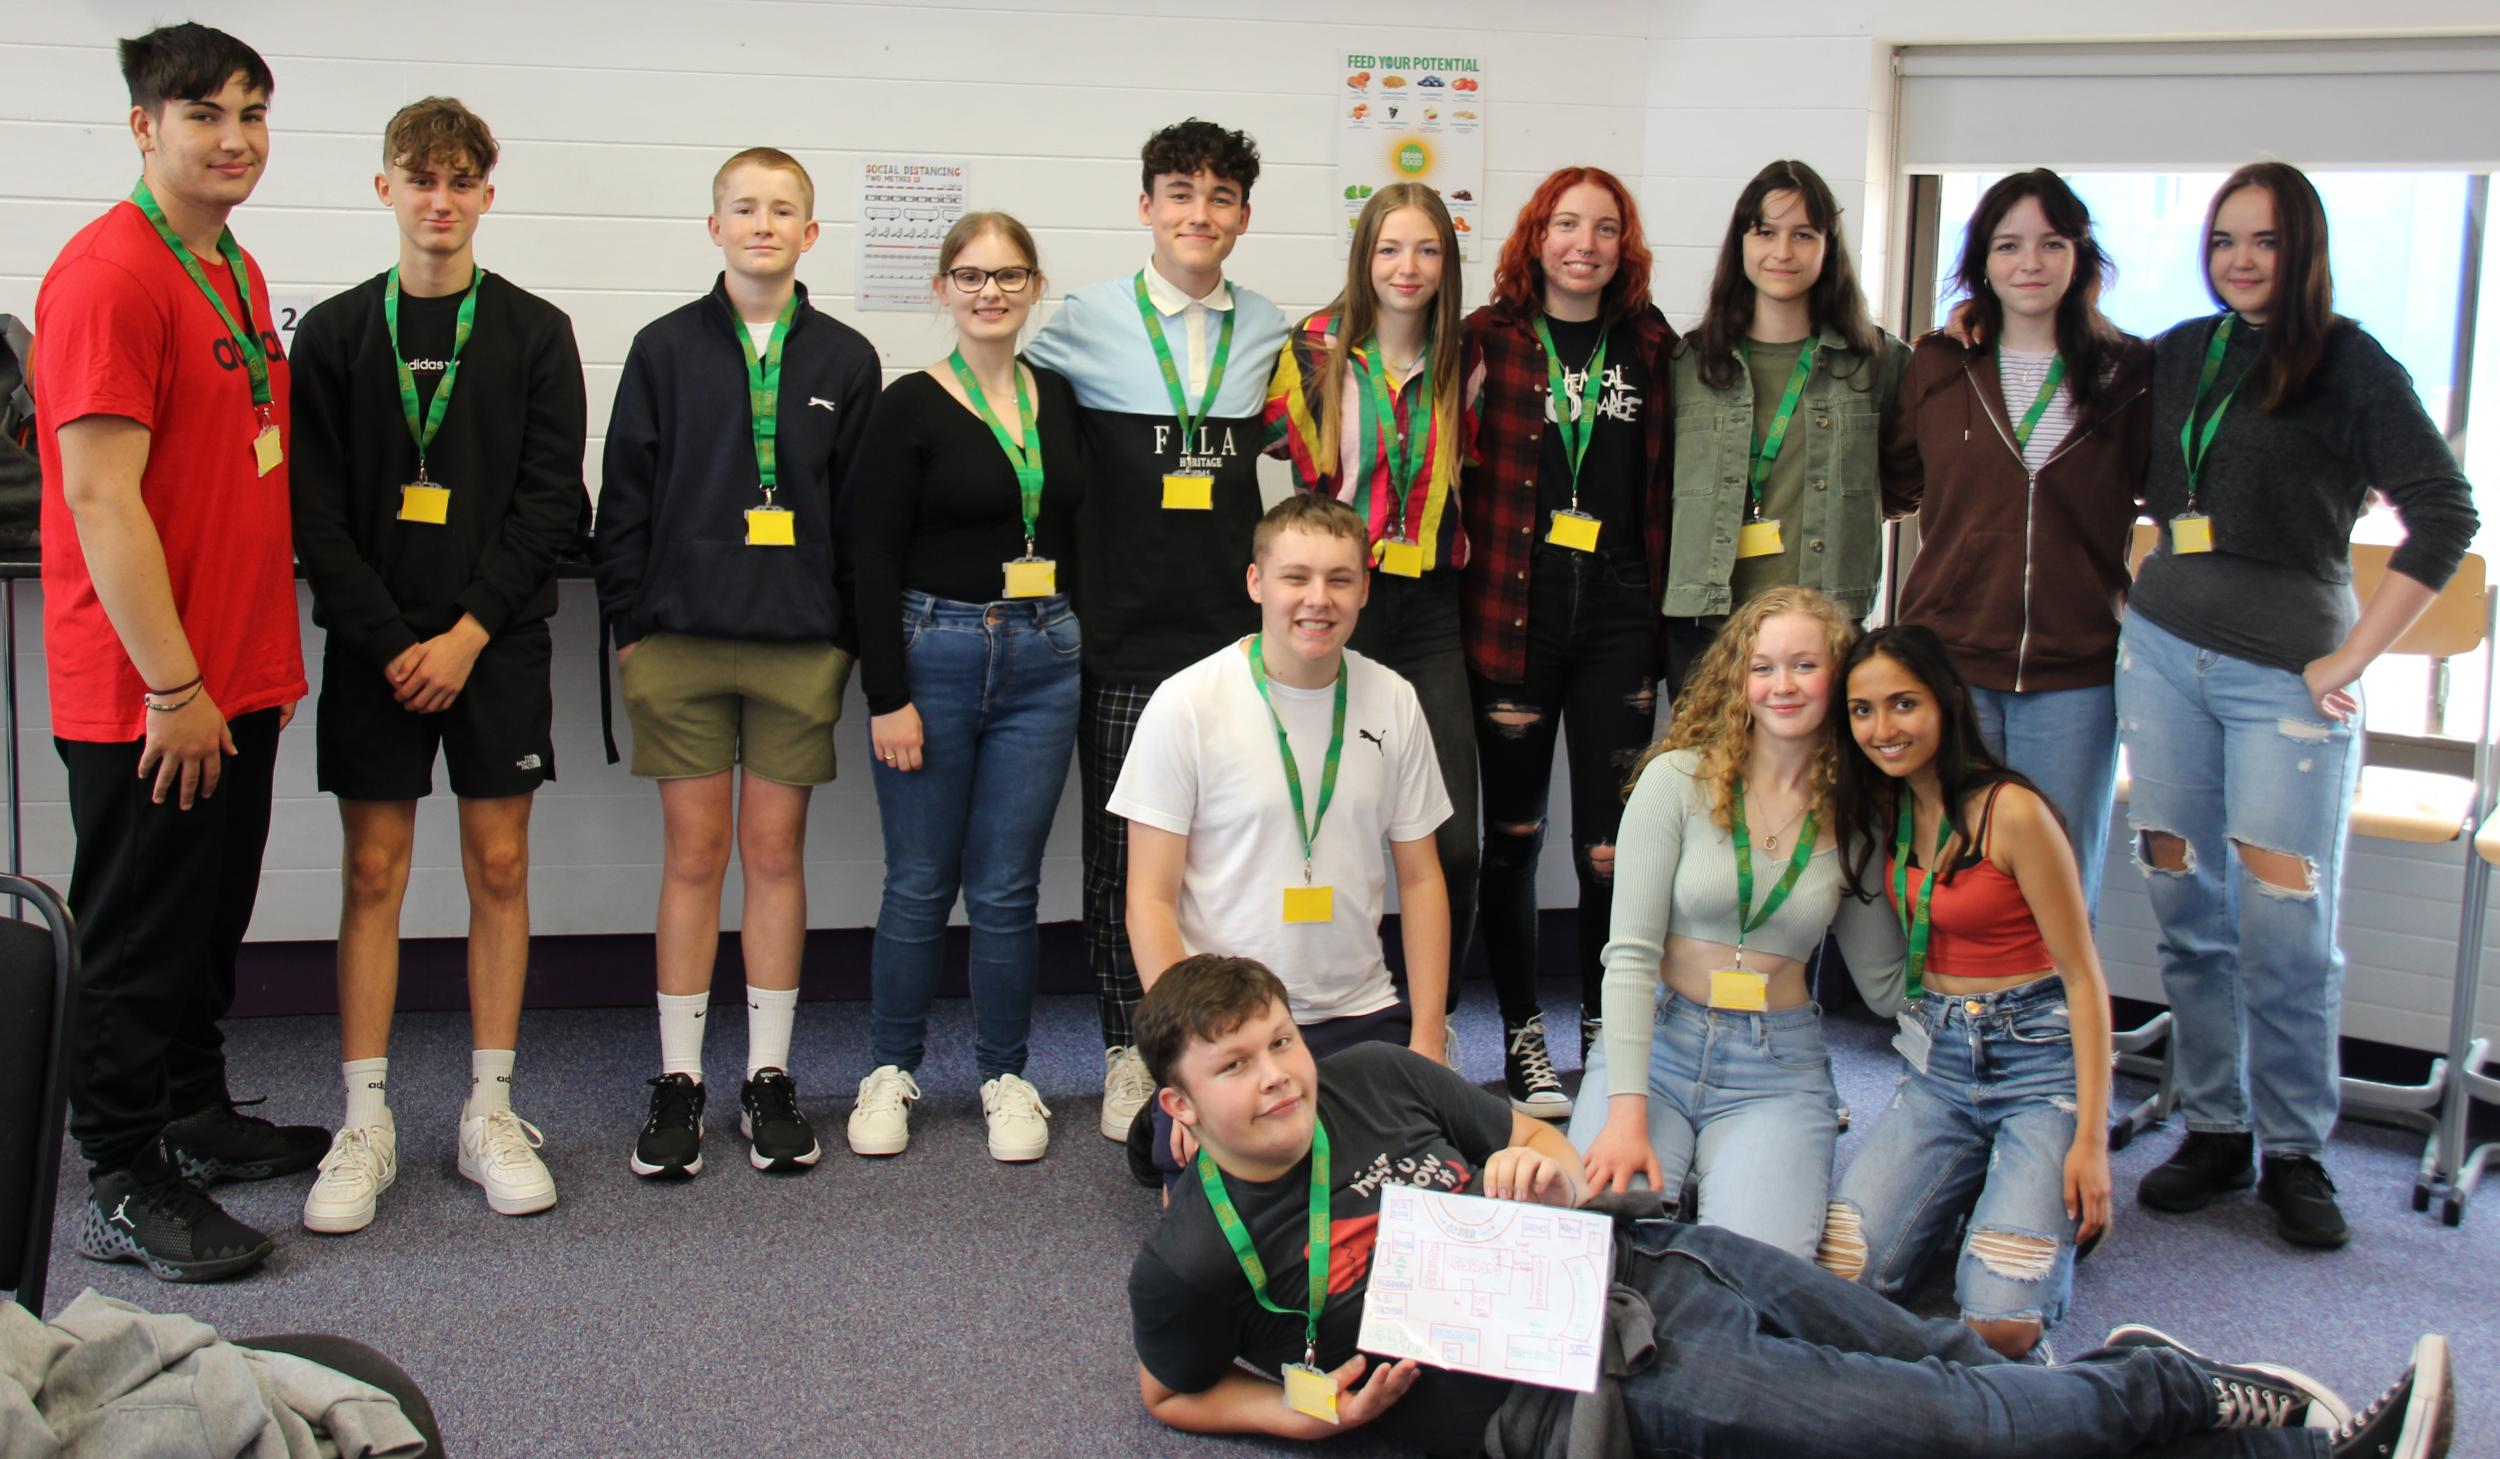 Group shot of students at Step into Huish event